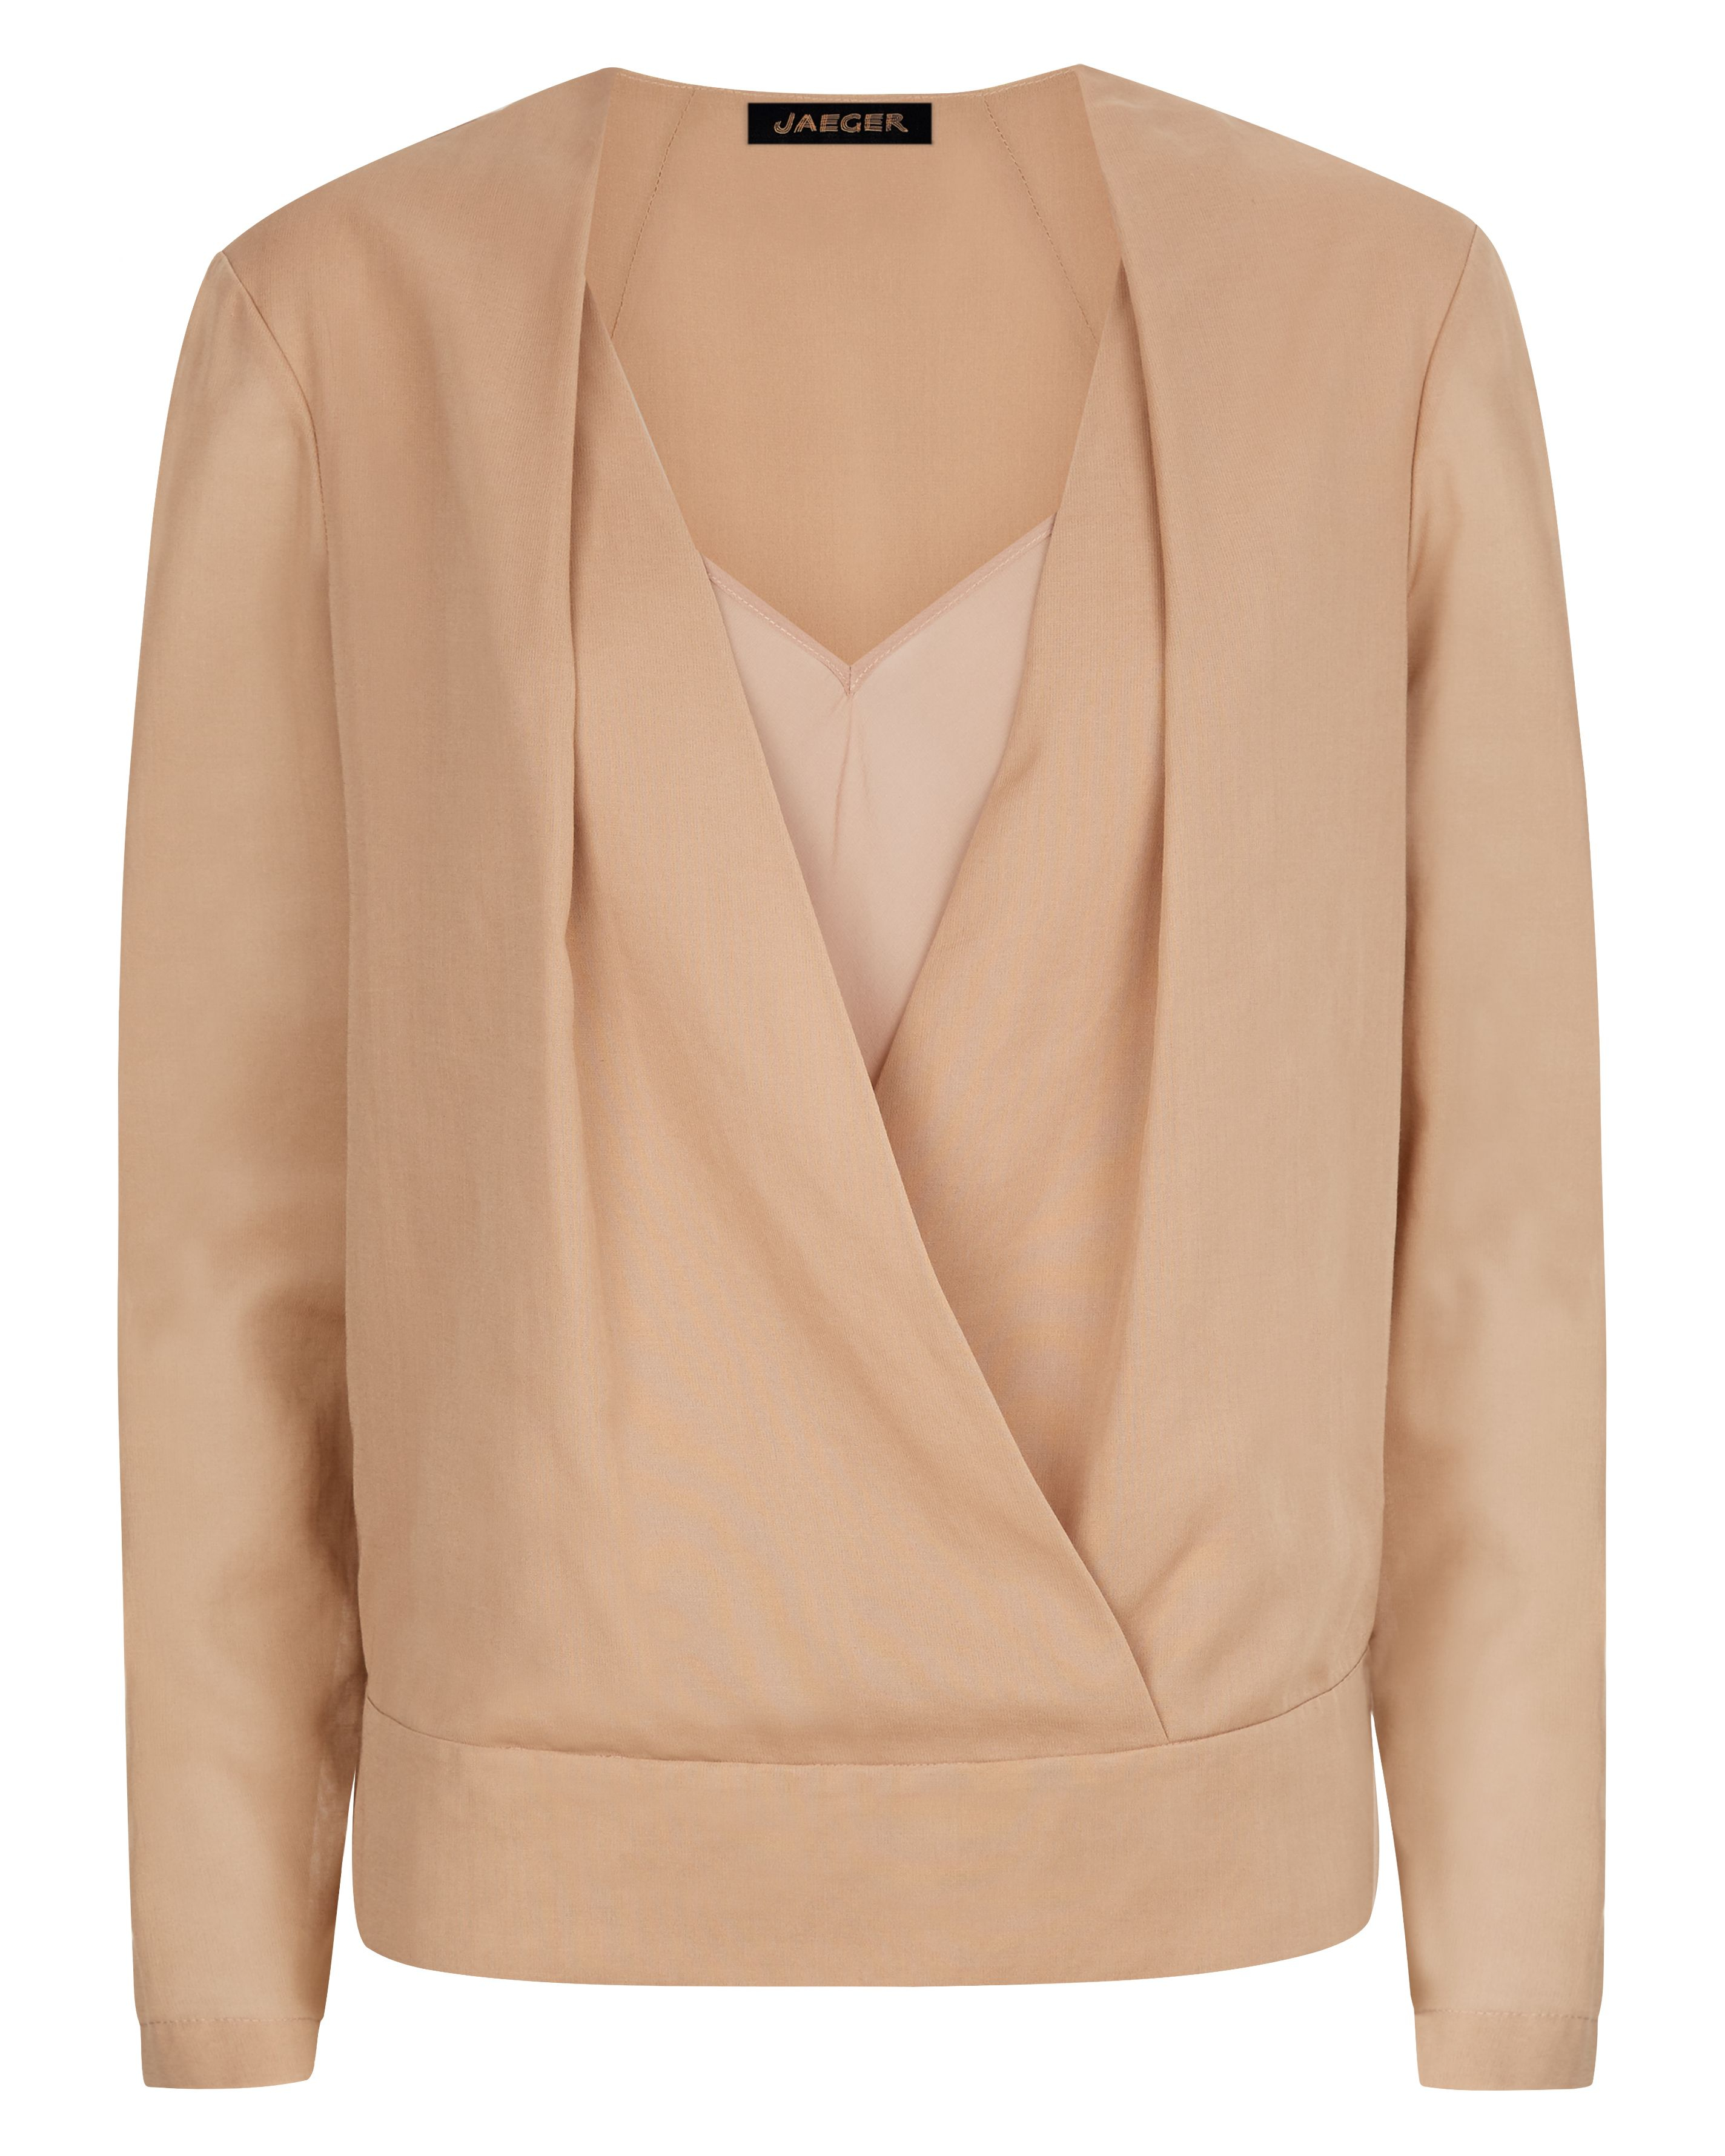 Jaeger Silk Wrap Blouse in Natural | Lyst